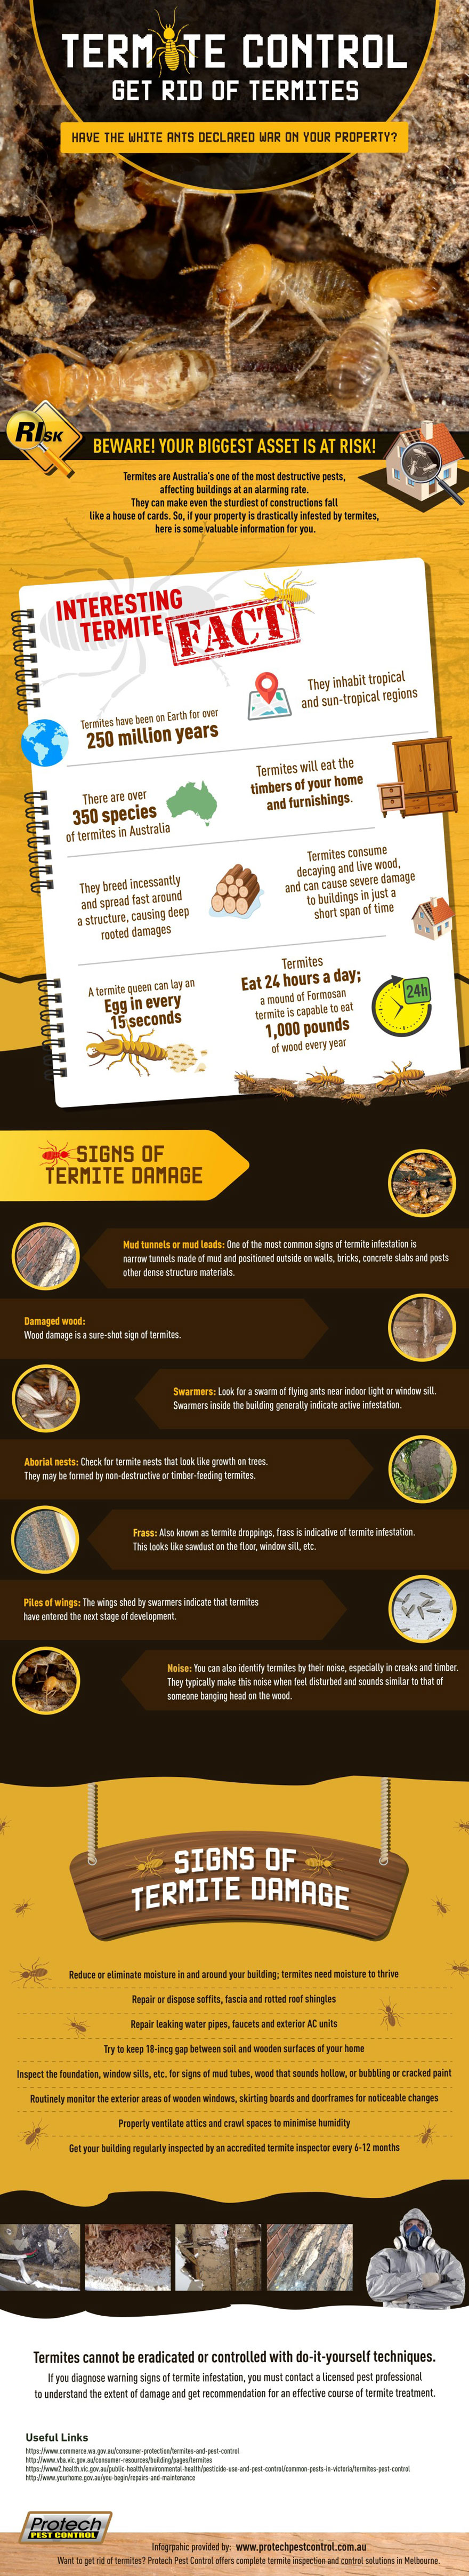 Termite Control: How to get rid of termites #Infographic #Animal #Termite